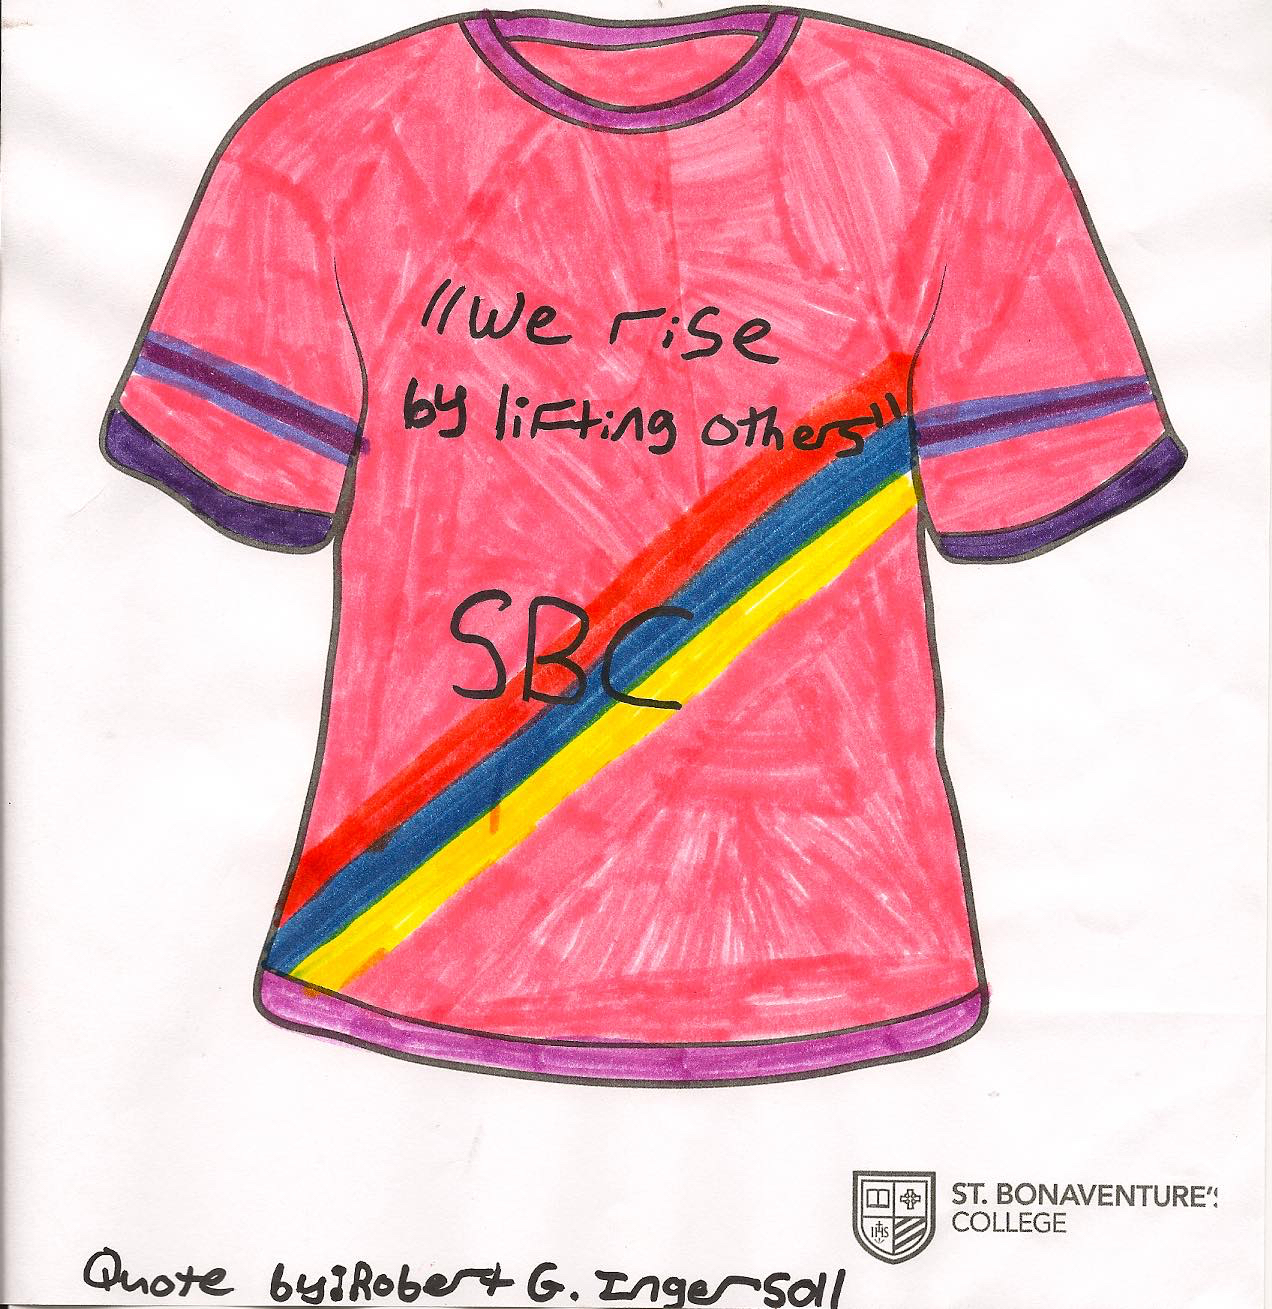 Pink Shirt Day T-Shirt Design Winners – St. Bonaventure's College